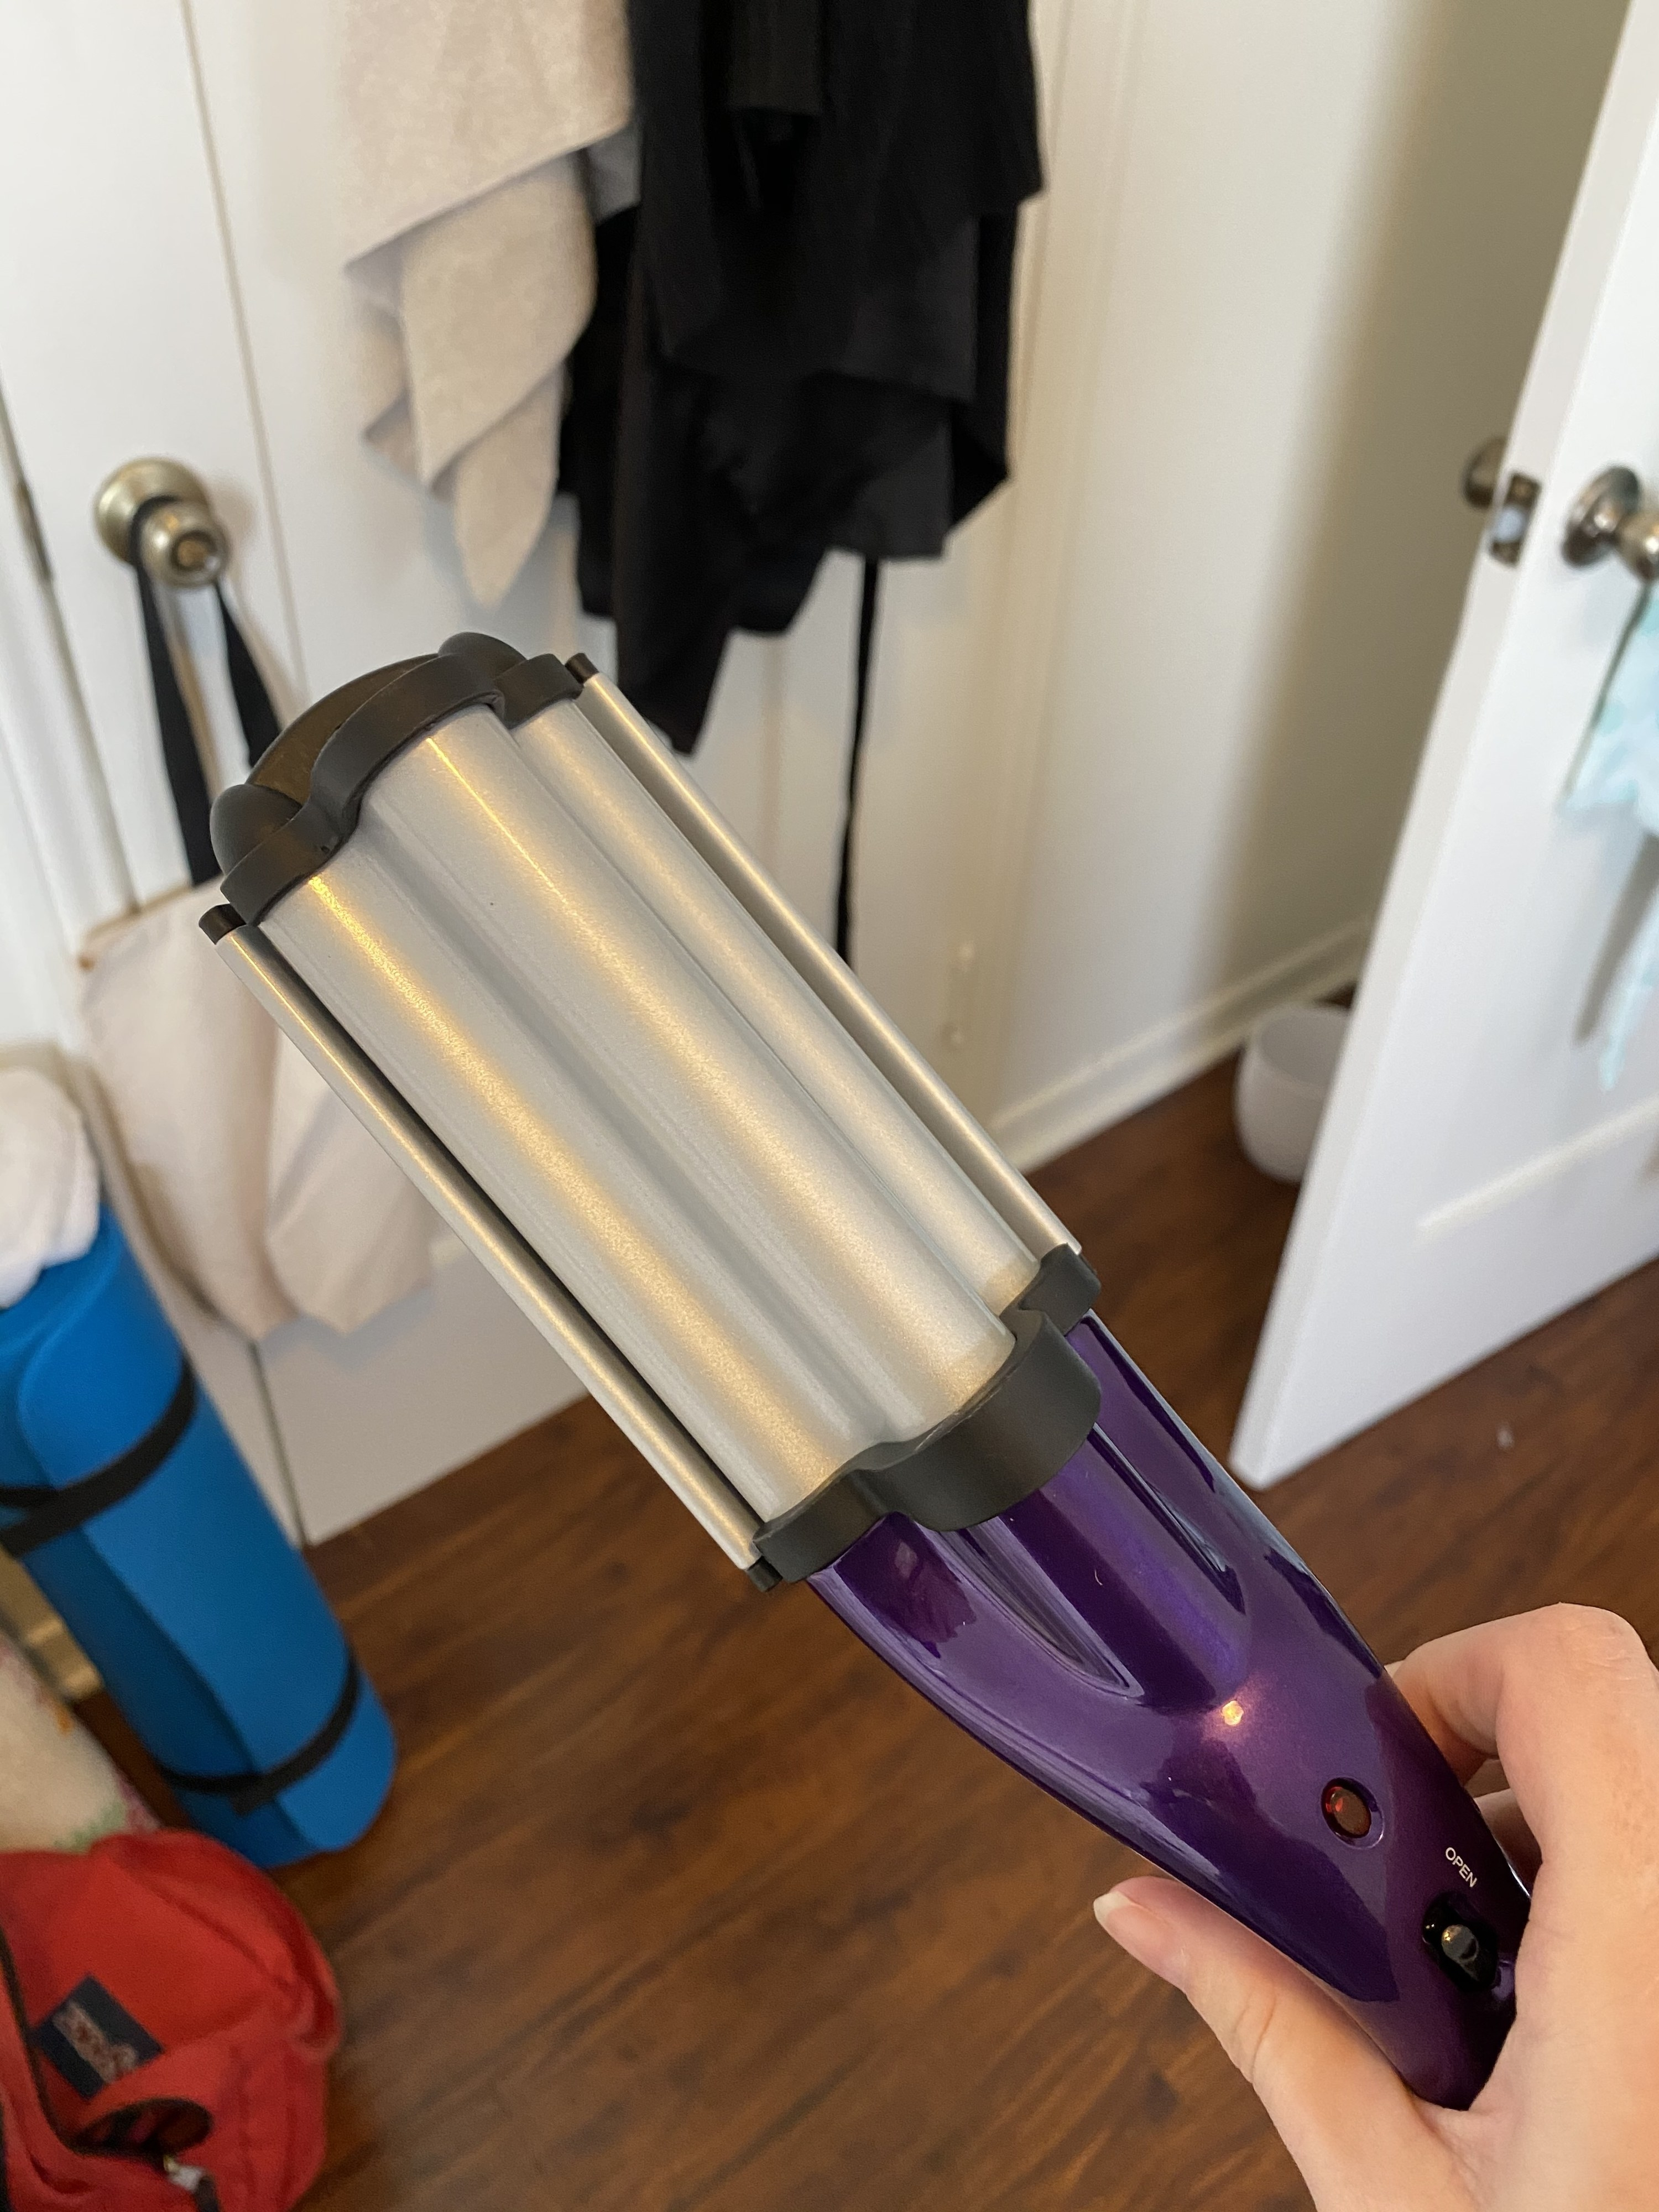 """The Bed Head waver held in my hand, with two clamps and iron plates that create an """"S"""" shape when held together. The tool is pretty proportional to my hand, and other hair tools, but I expected it to be much larger."""